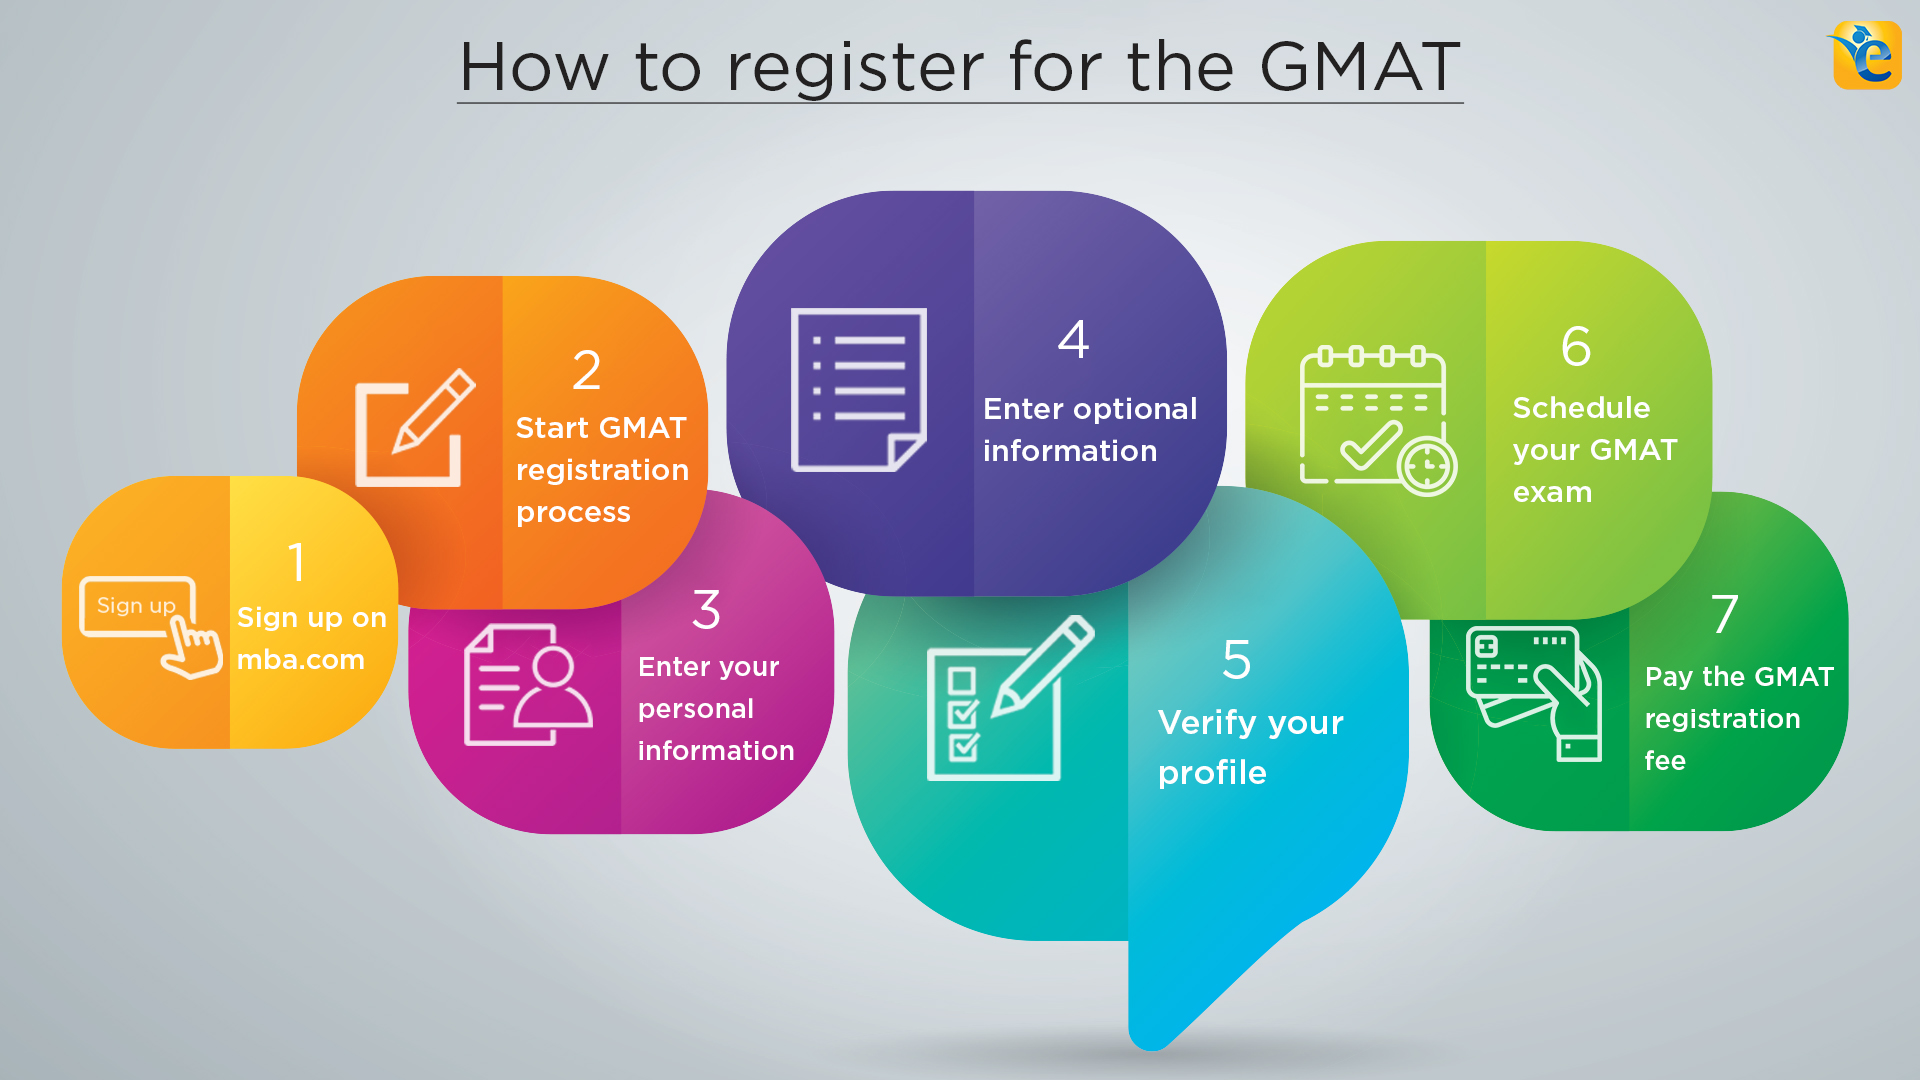 how to register for the GMAT